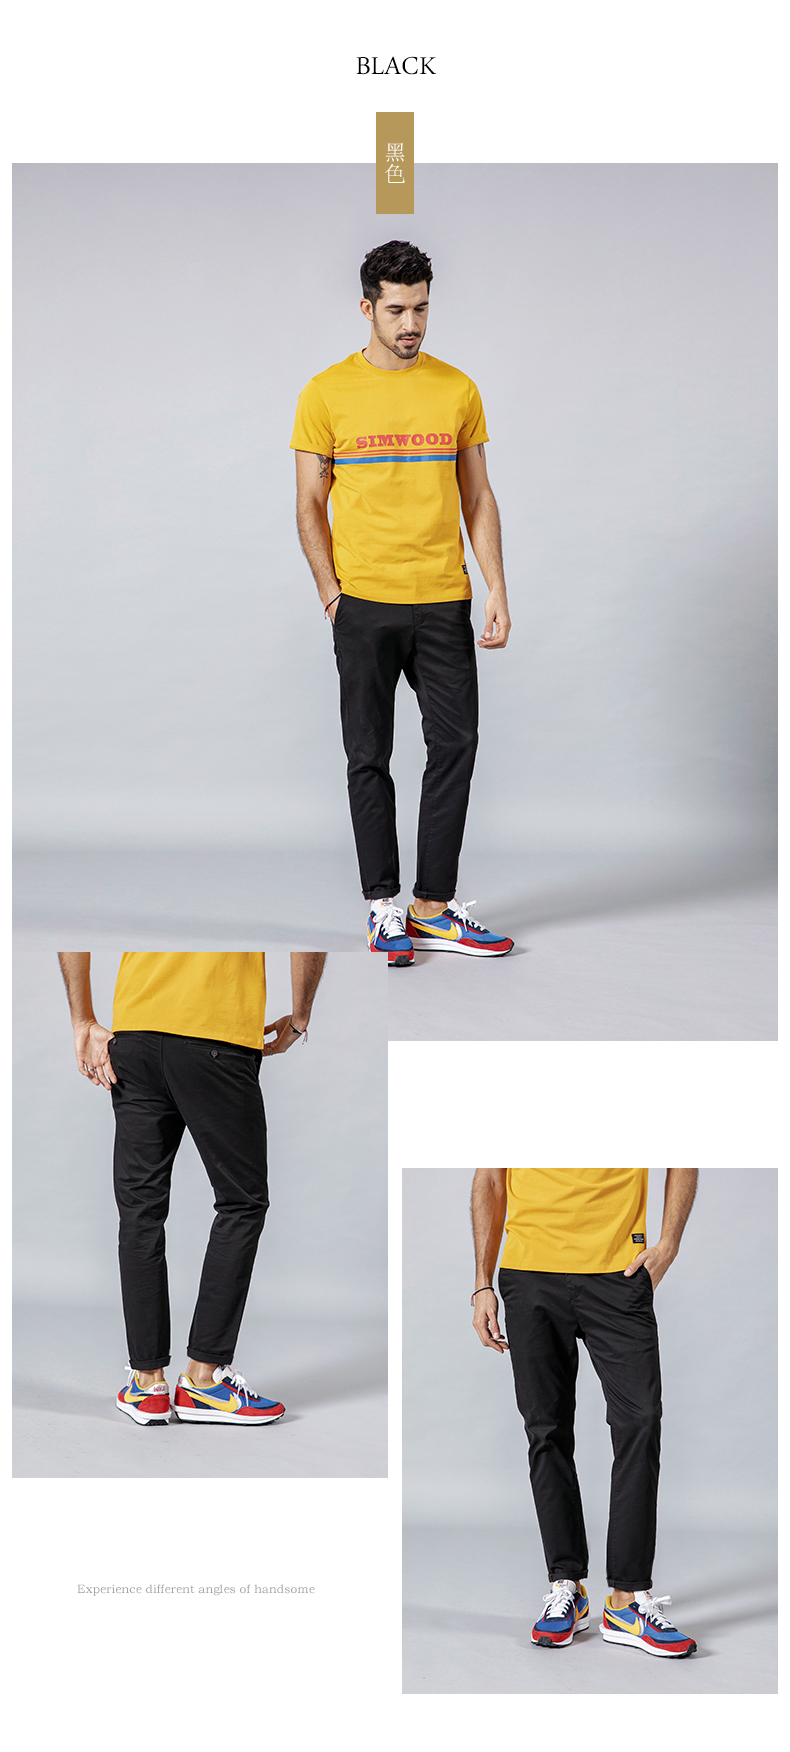 SIMWOOD 2019 Spring Summer New Casual Pants Men  Cotton Slim Fit Chinos Fashion Trousers Male Brand Clothing Plus Size